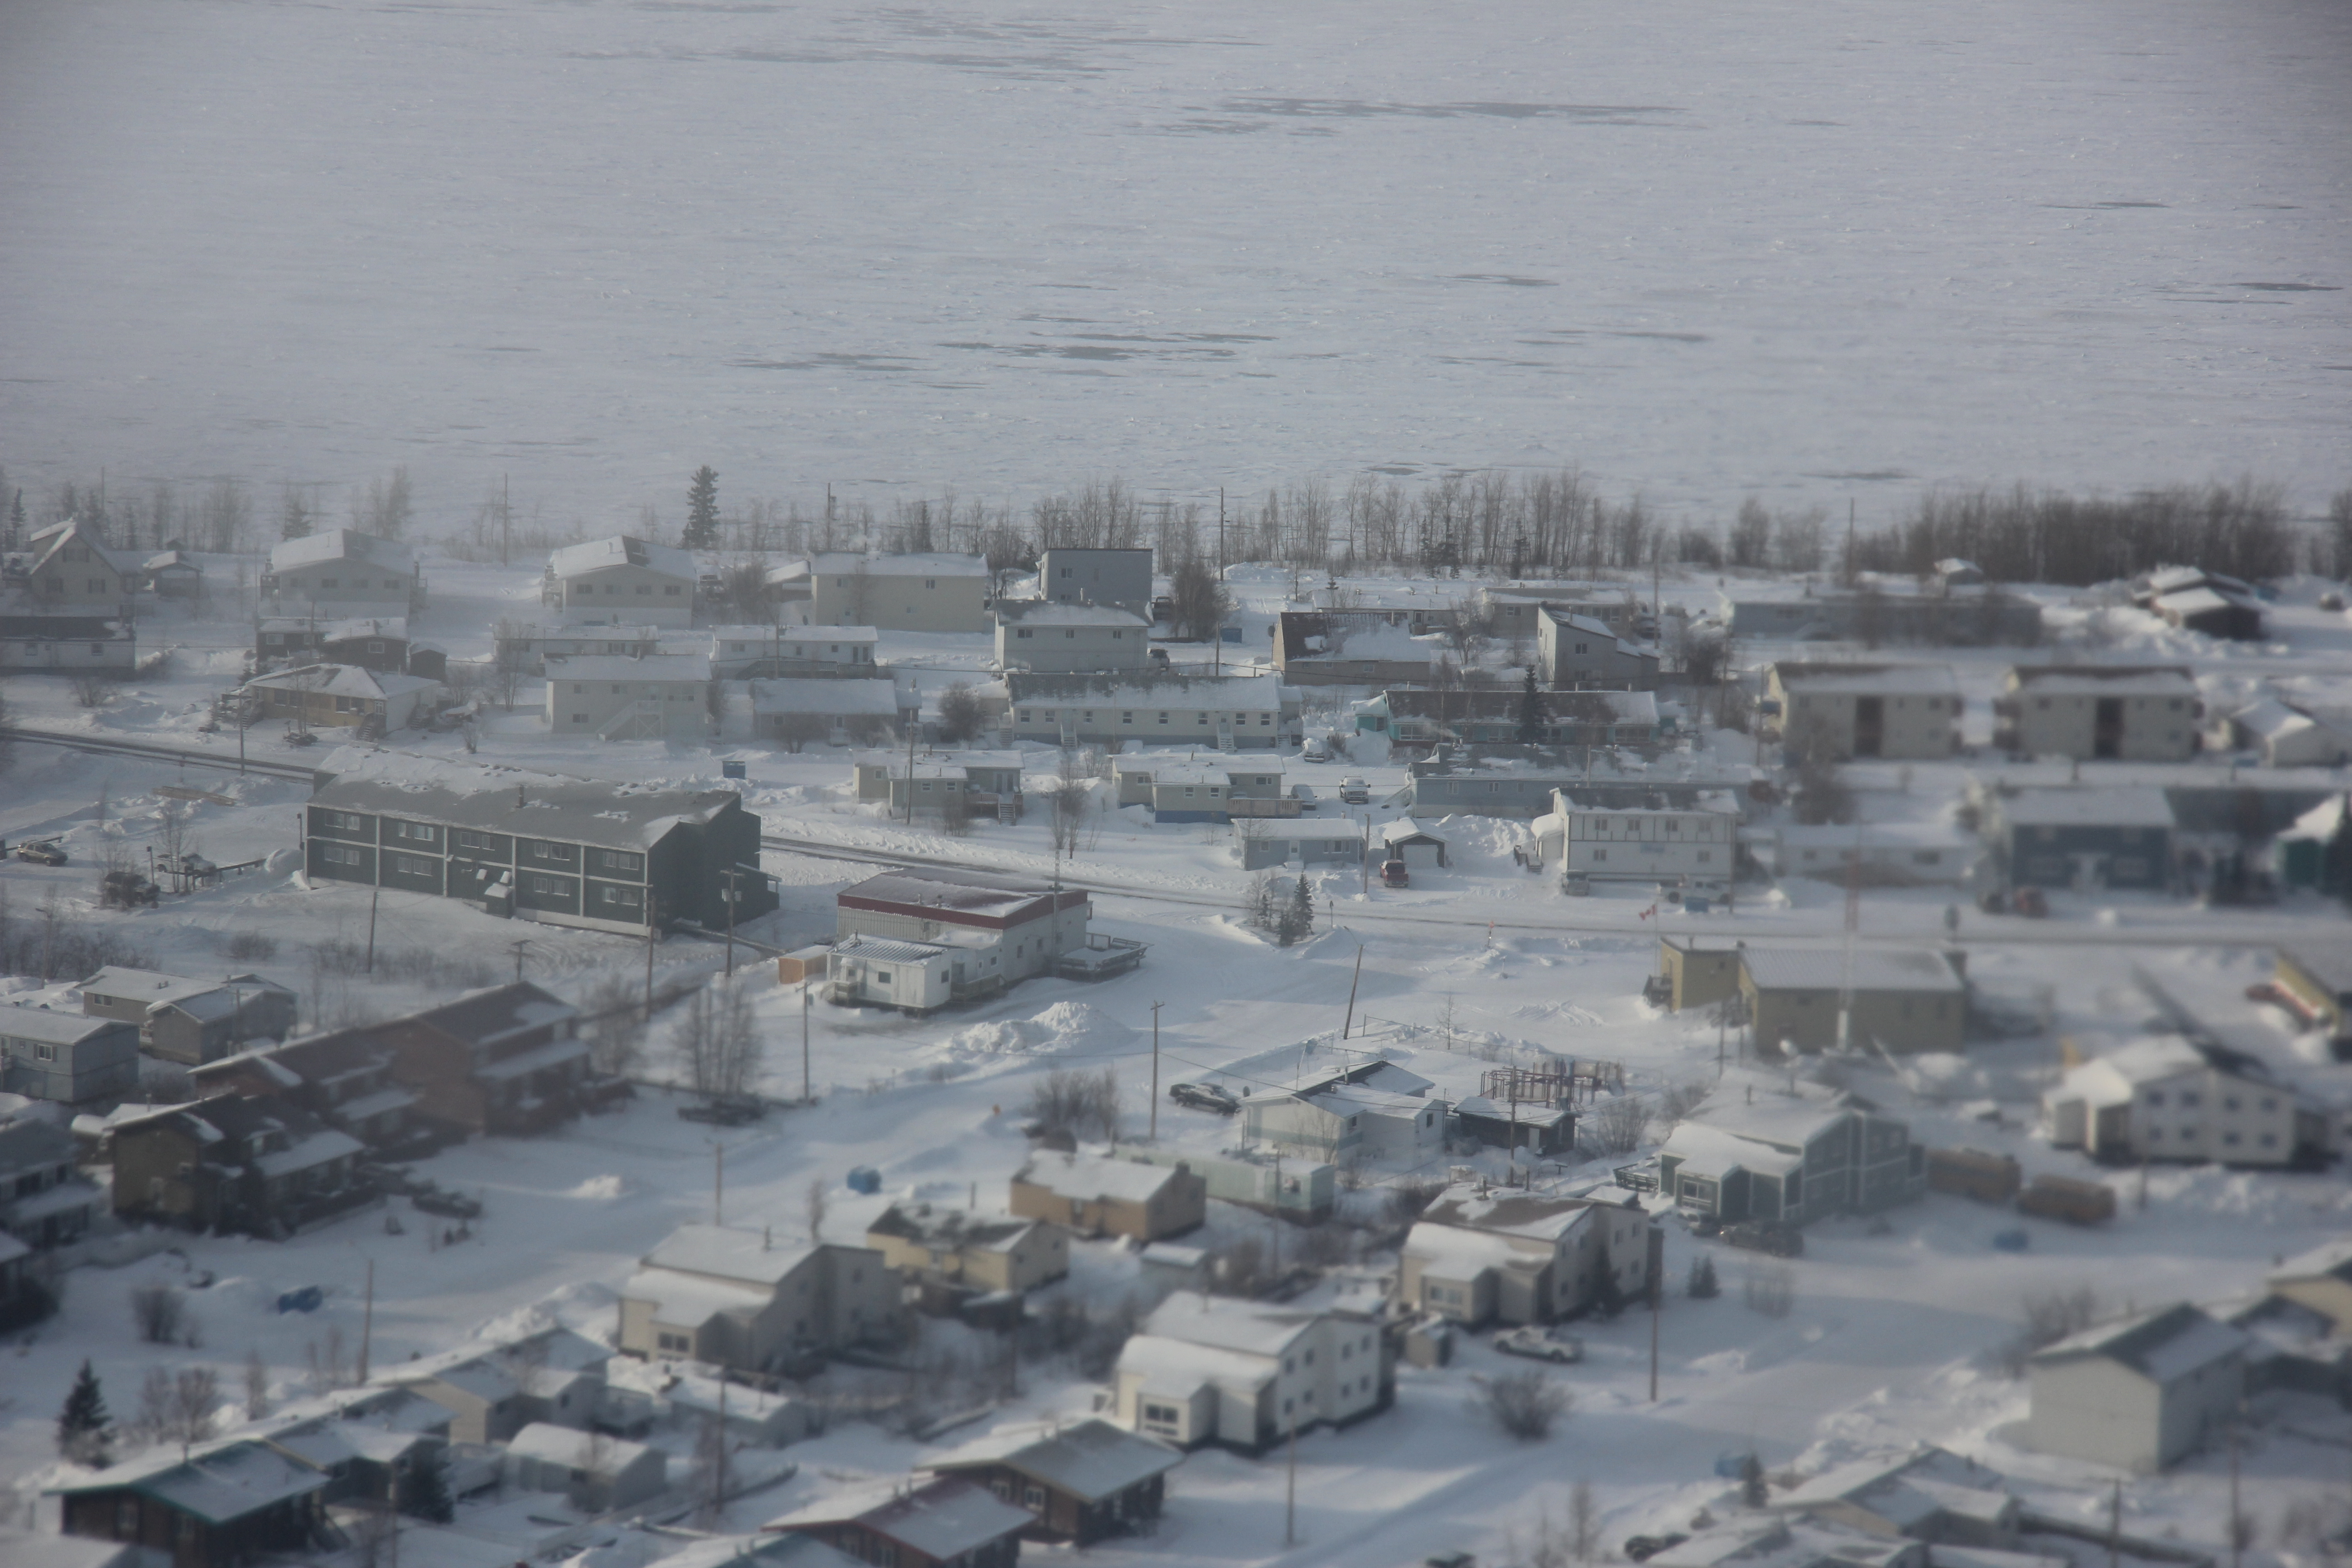 The Town of Norman Wells, N.W.T., is located close to where companies are exploring for oil and gas in the Sahtu region. The president of the Norman Wells Chamber of Commerce says local companies are happy ConocoPhillips' project was approved. (Eilís Quinn, Eye on the Arctic)